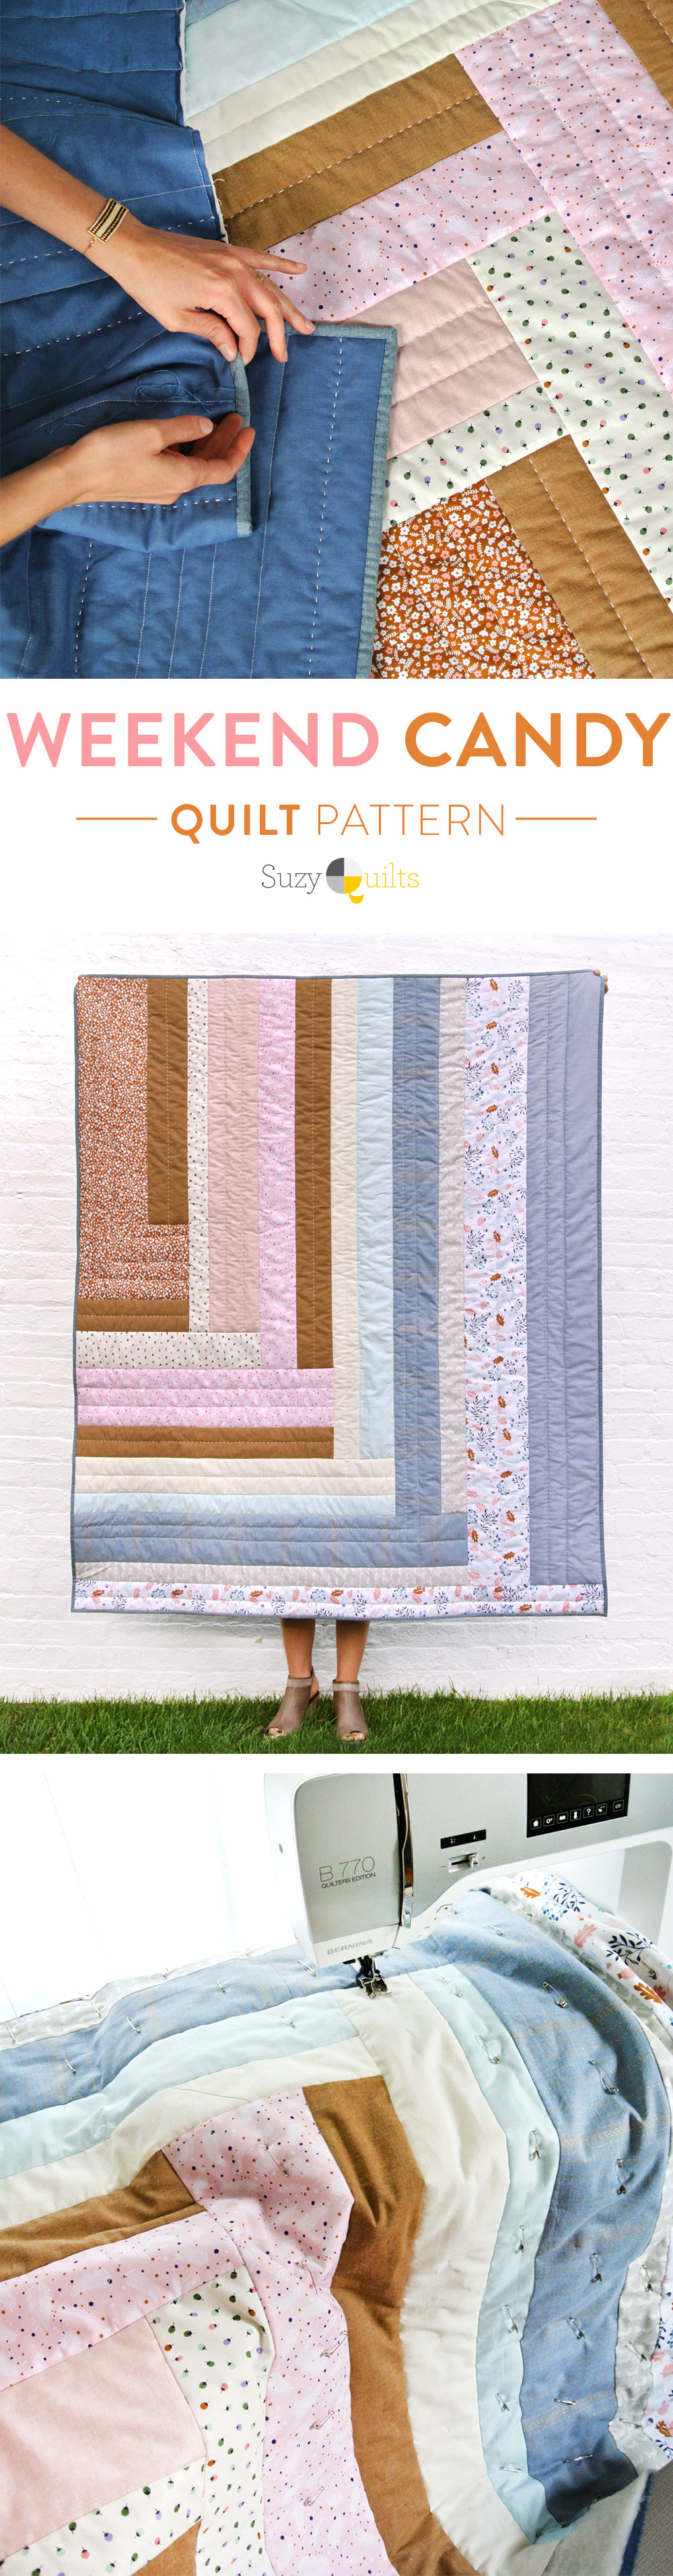 Weekend-Candy-Quilt-Pattern